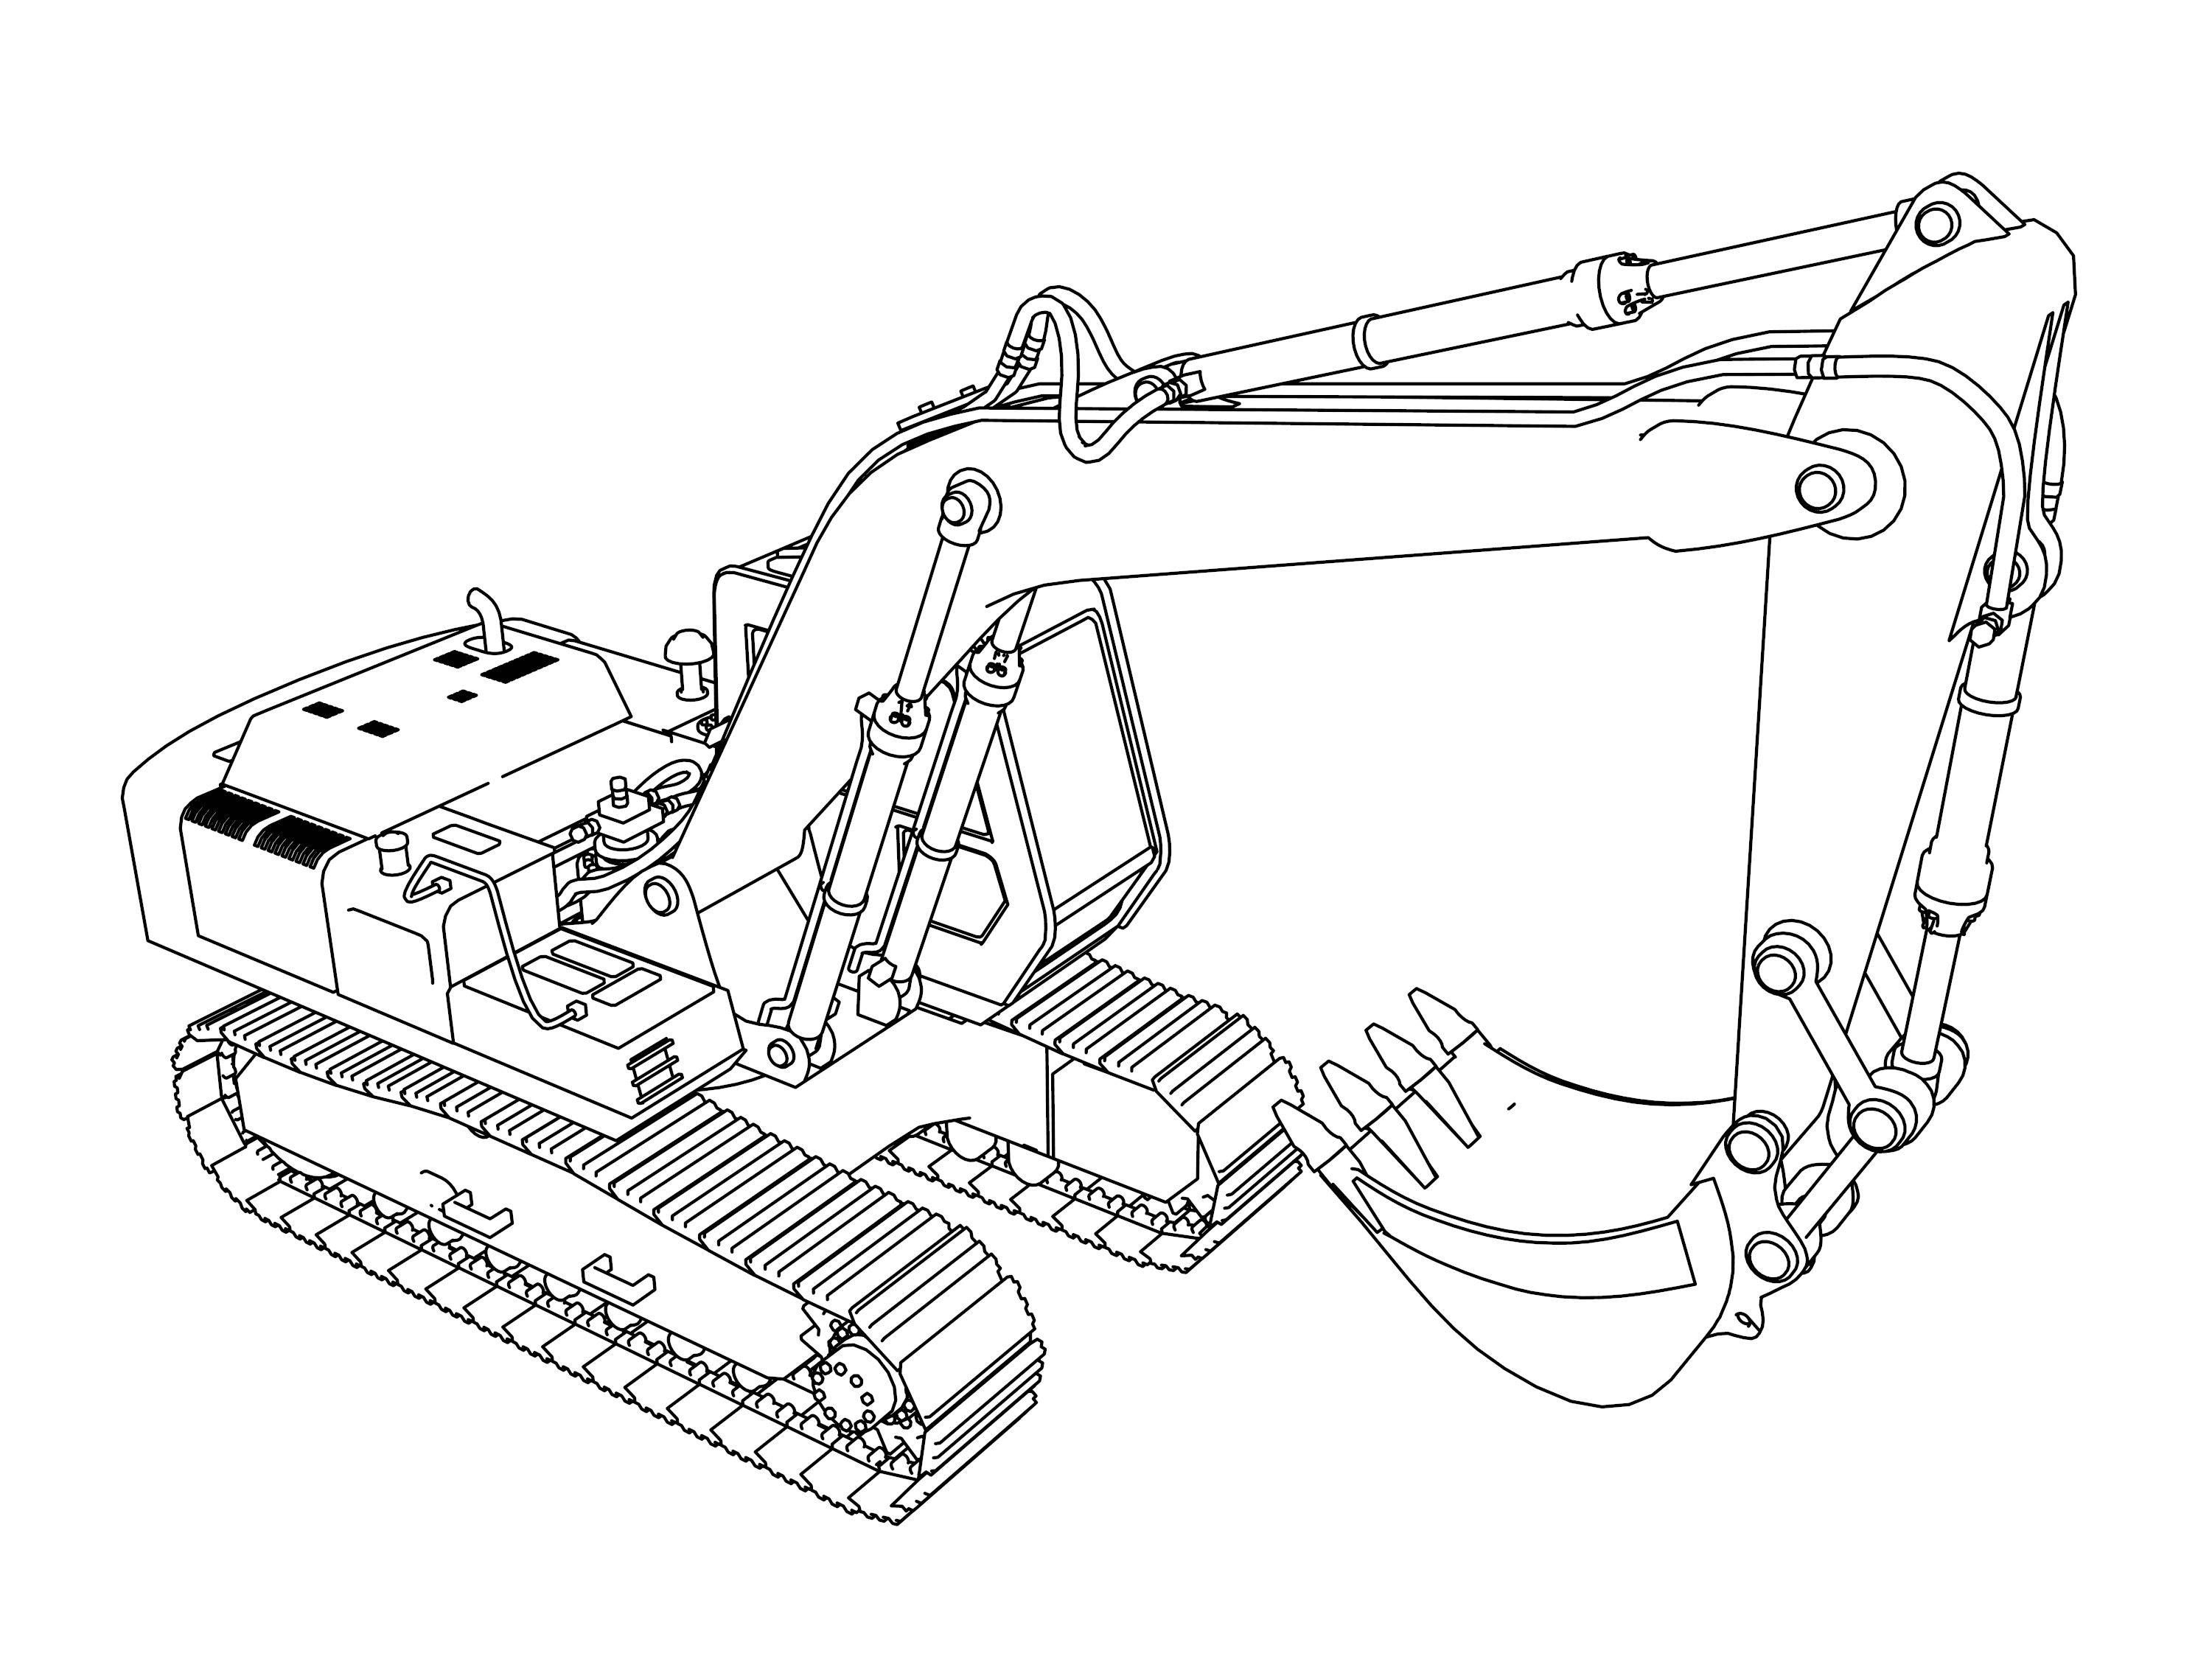 Excavator Coloring Pages Coloring pages, Cartoon